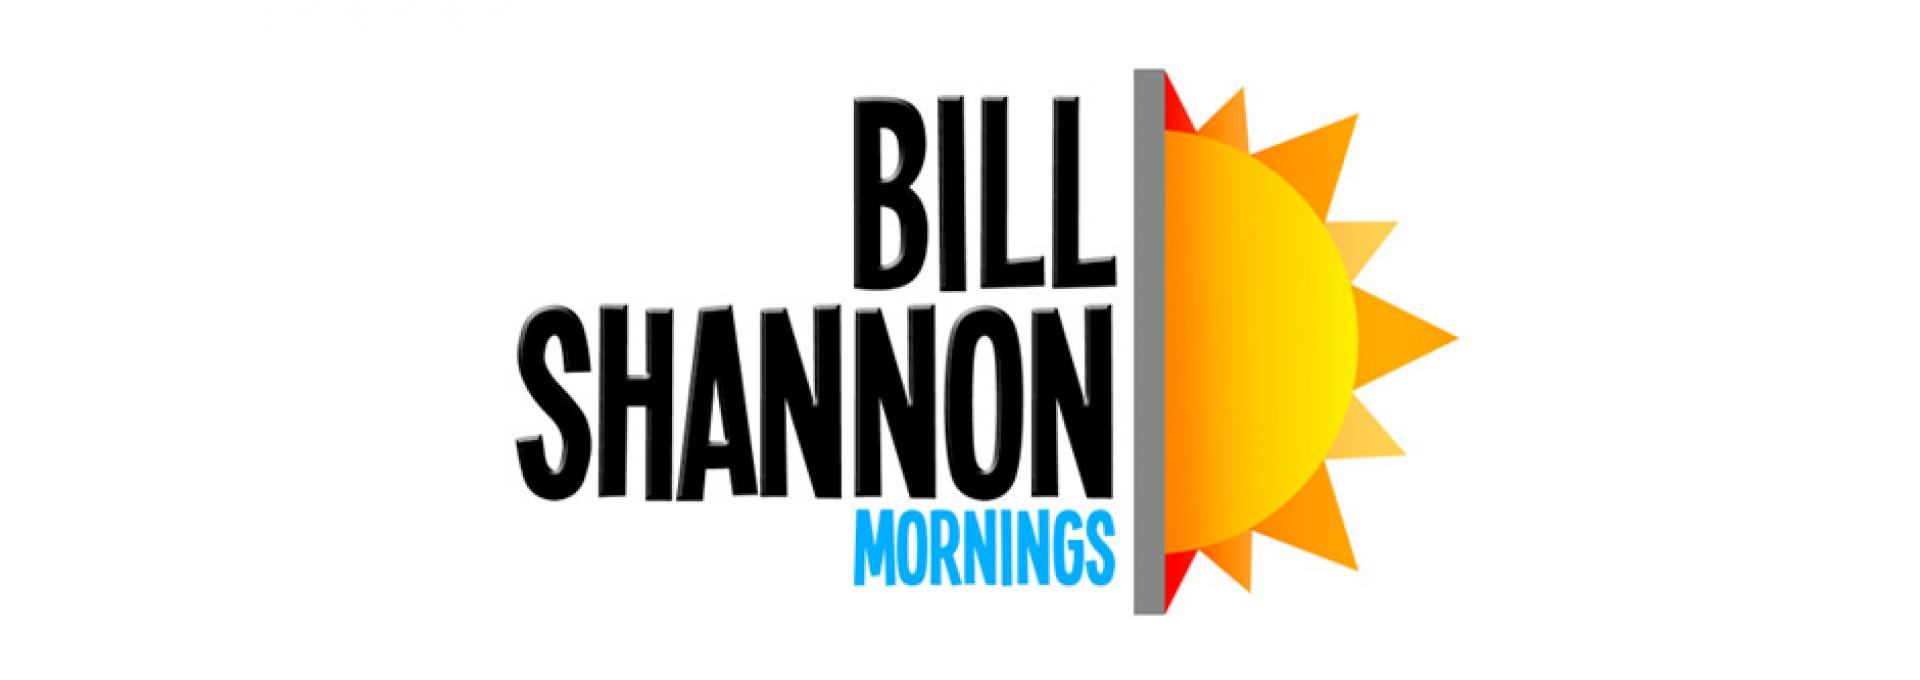 BILL SHANNON MORNINGS hero